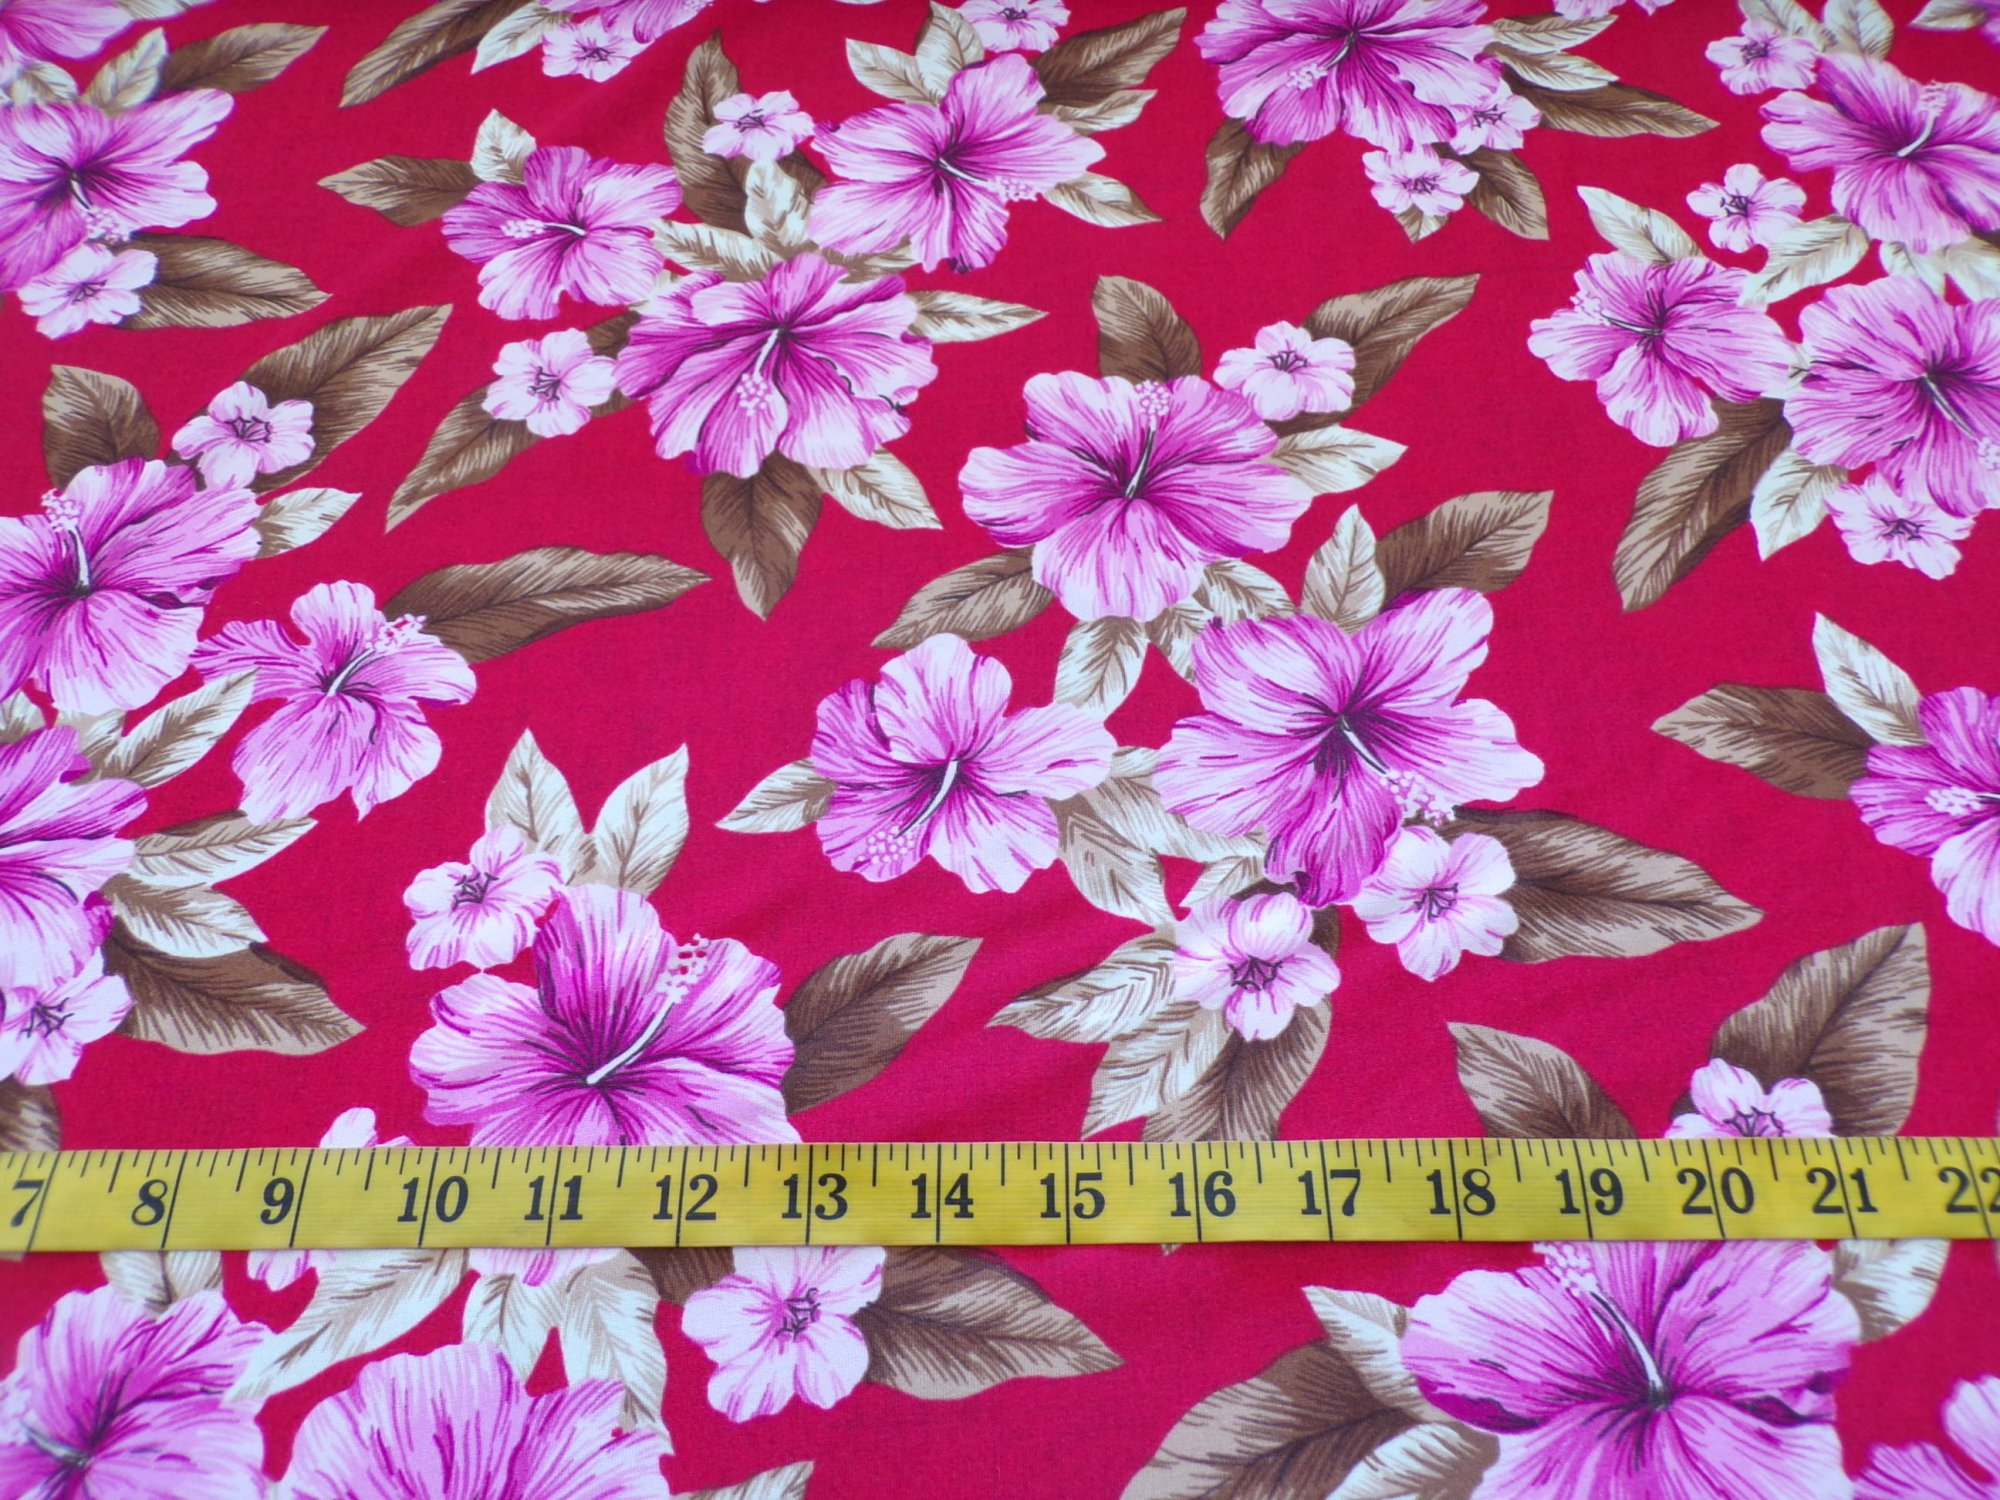 Swimwear - Red with Pink and Tan Floral